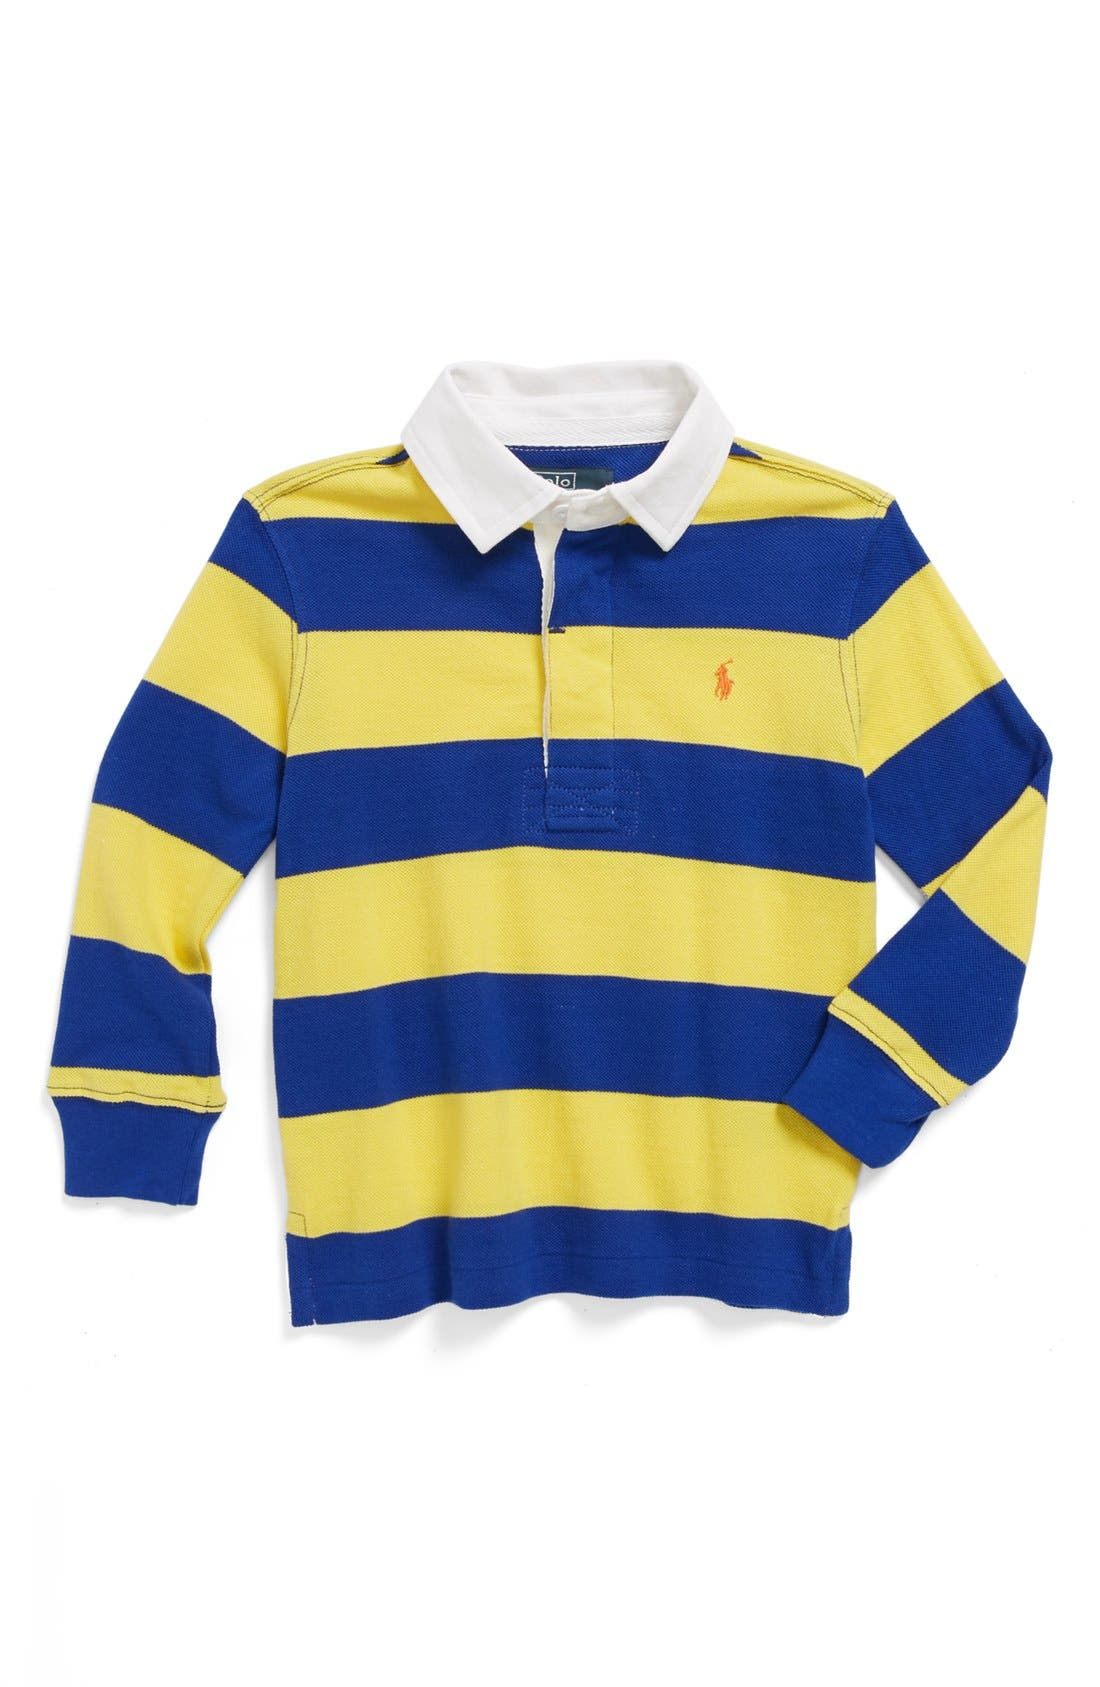 Main Image - Ralph Lauren Rugby Stripe Polo (Toddler Boys)